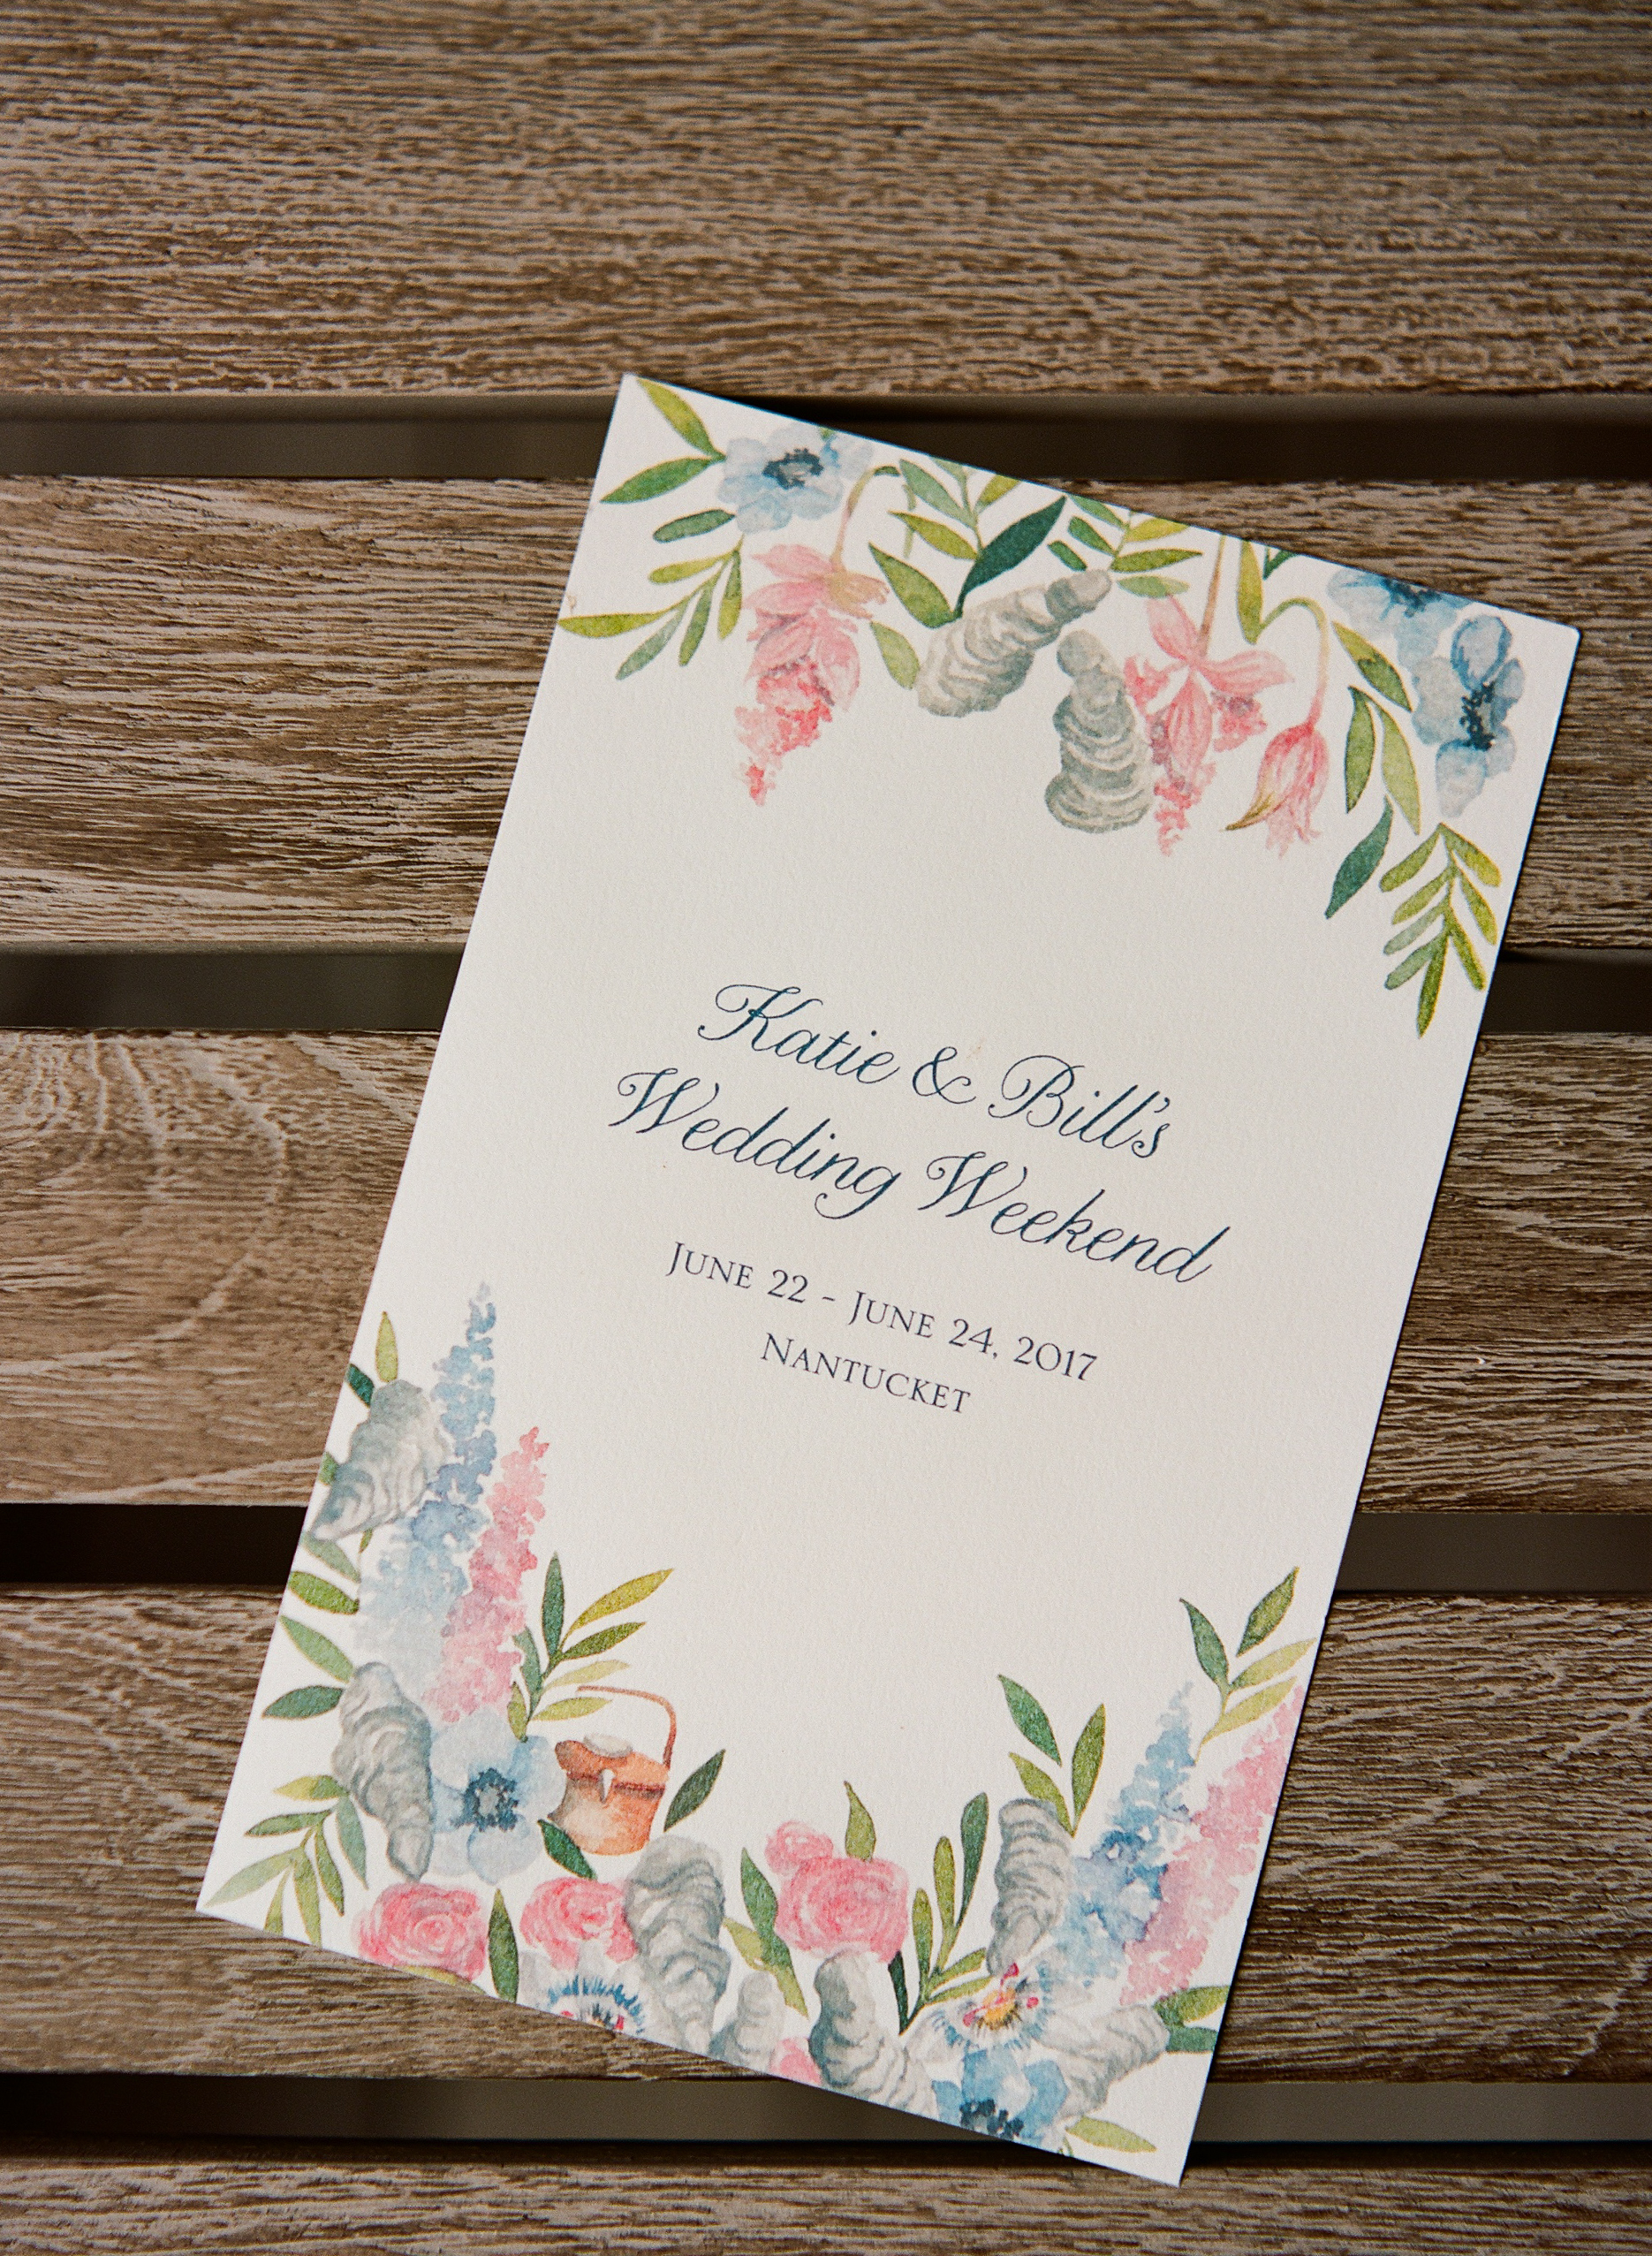 painted-floral-wedding-invitation-nautical-wedding